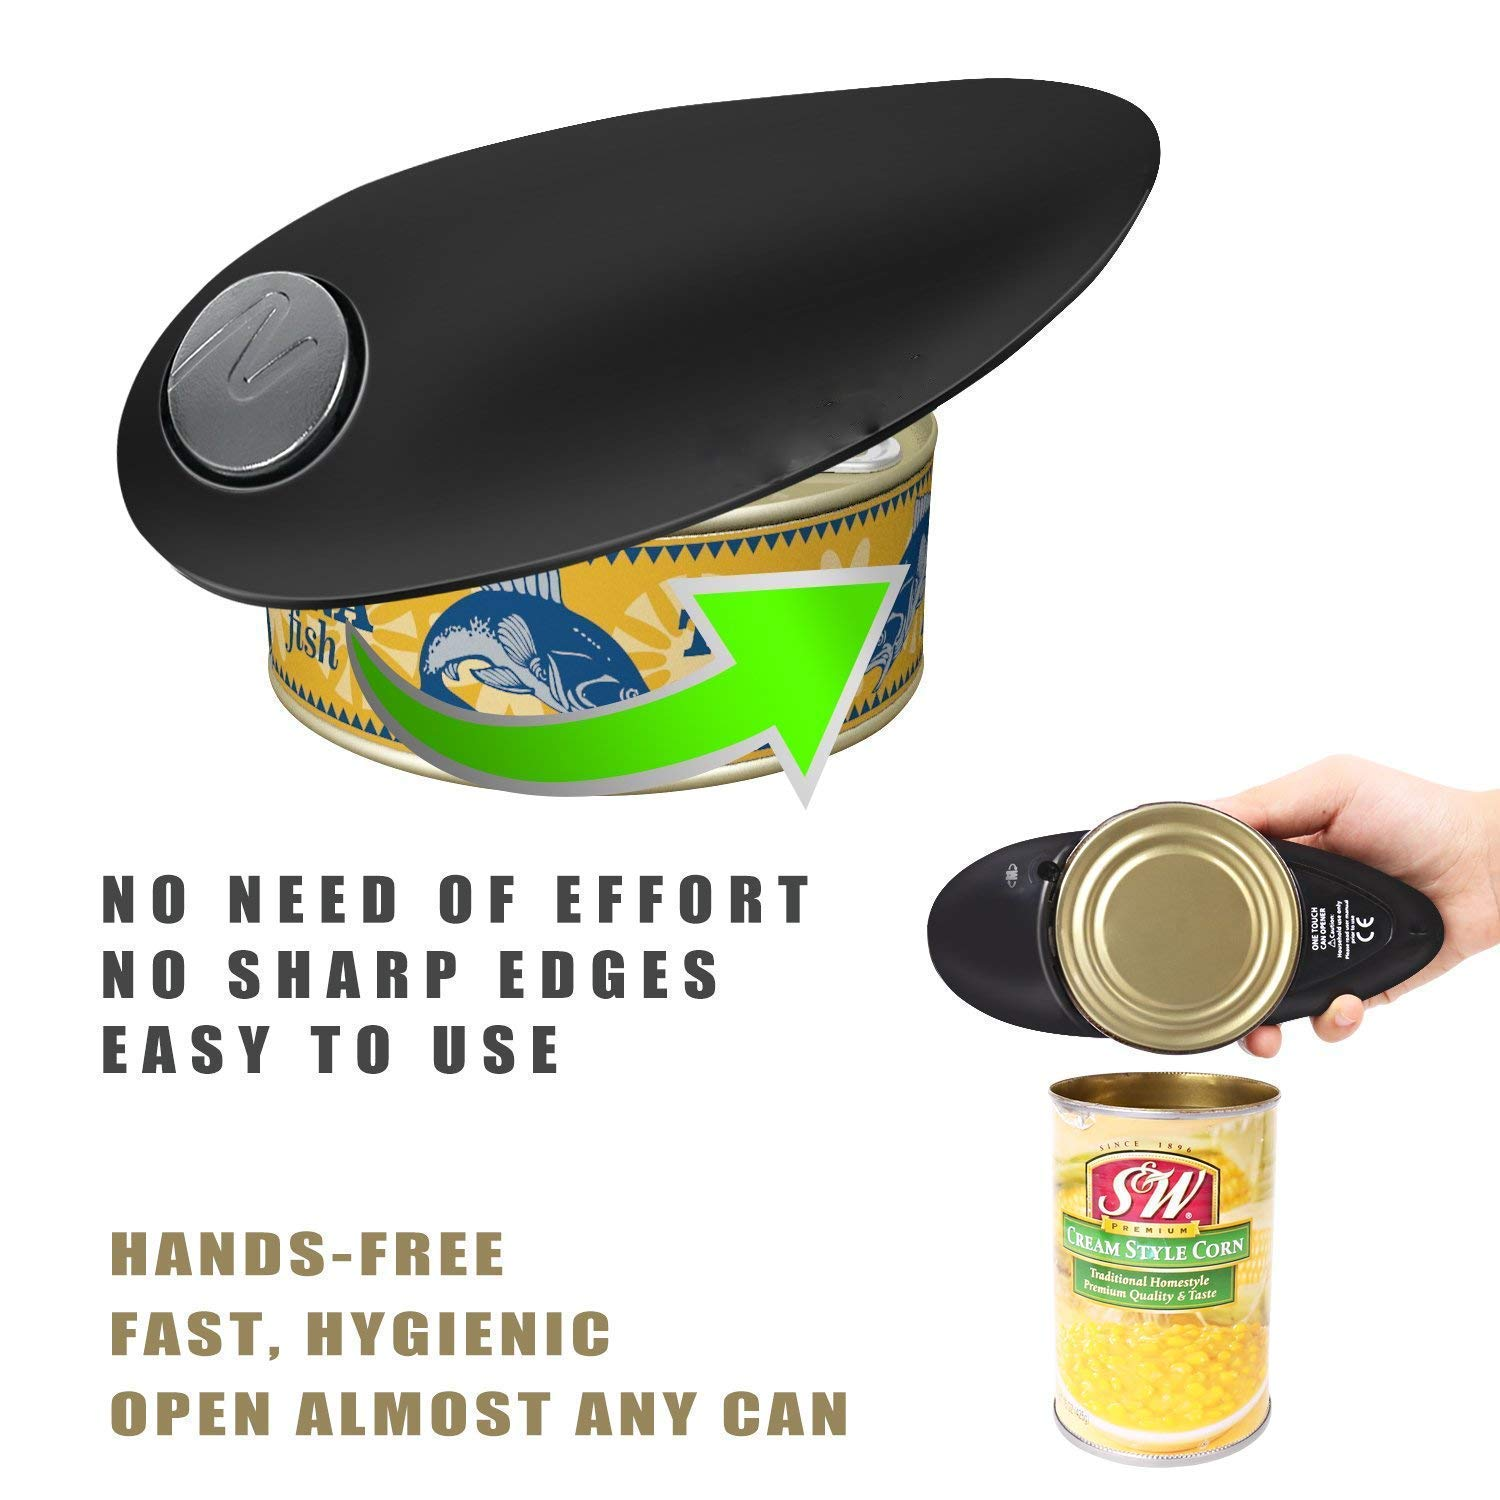 Electric Can Opener, Cakie Restaurant Can Opener Smooth Soft Edge One-touch Battery Automatic Electric Hands-free Can Opener For Kitchen Arthritis Elderly Travel and Chef's Best Choice's (Red) VantaKool